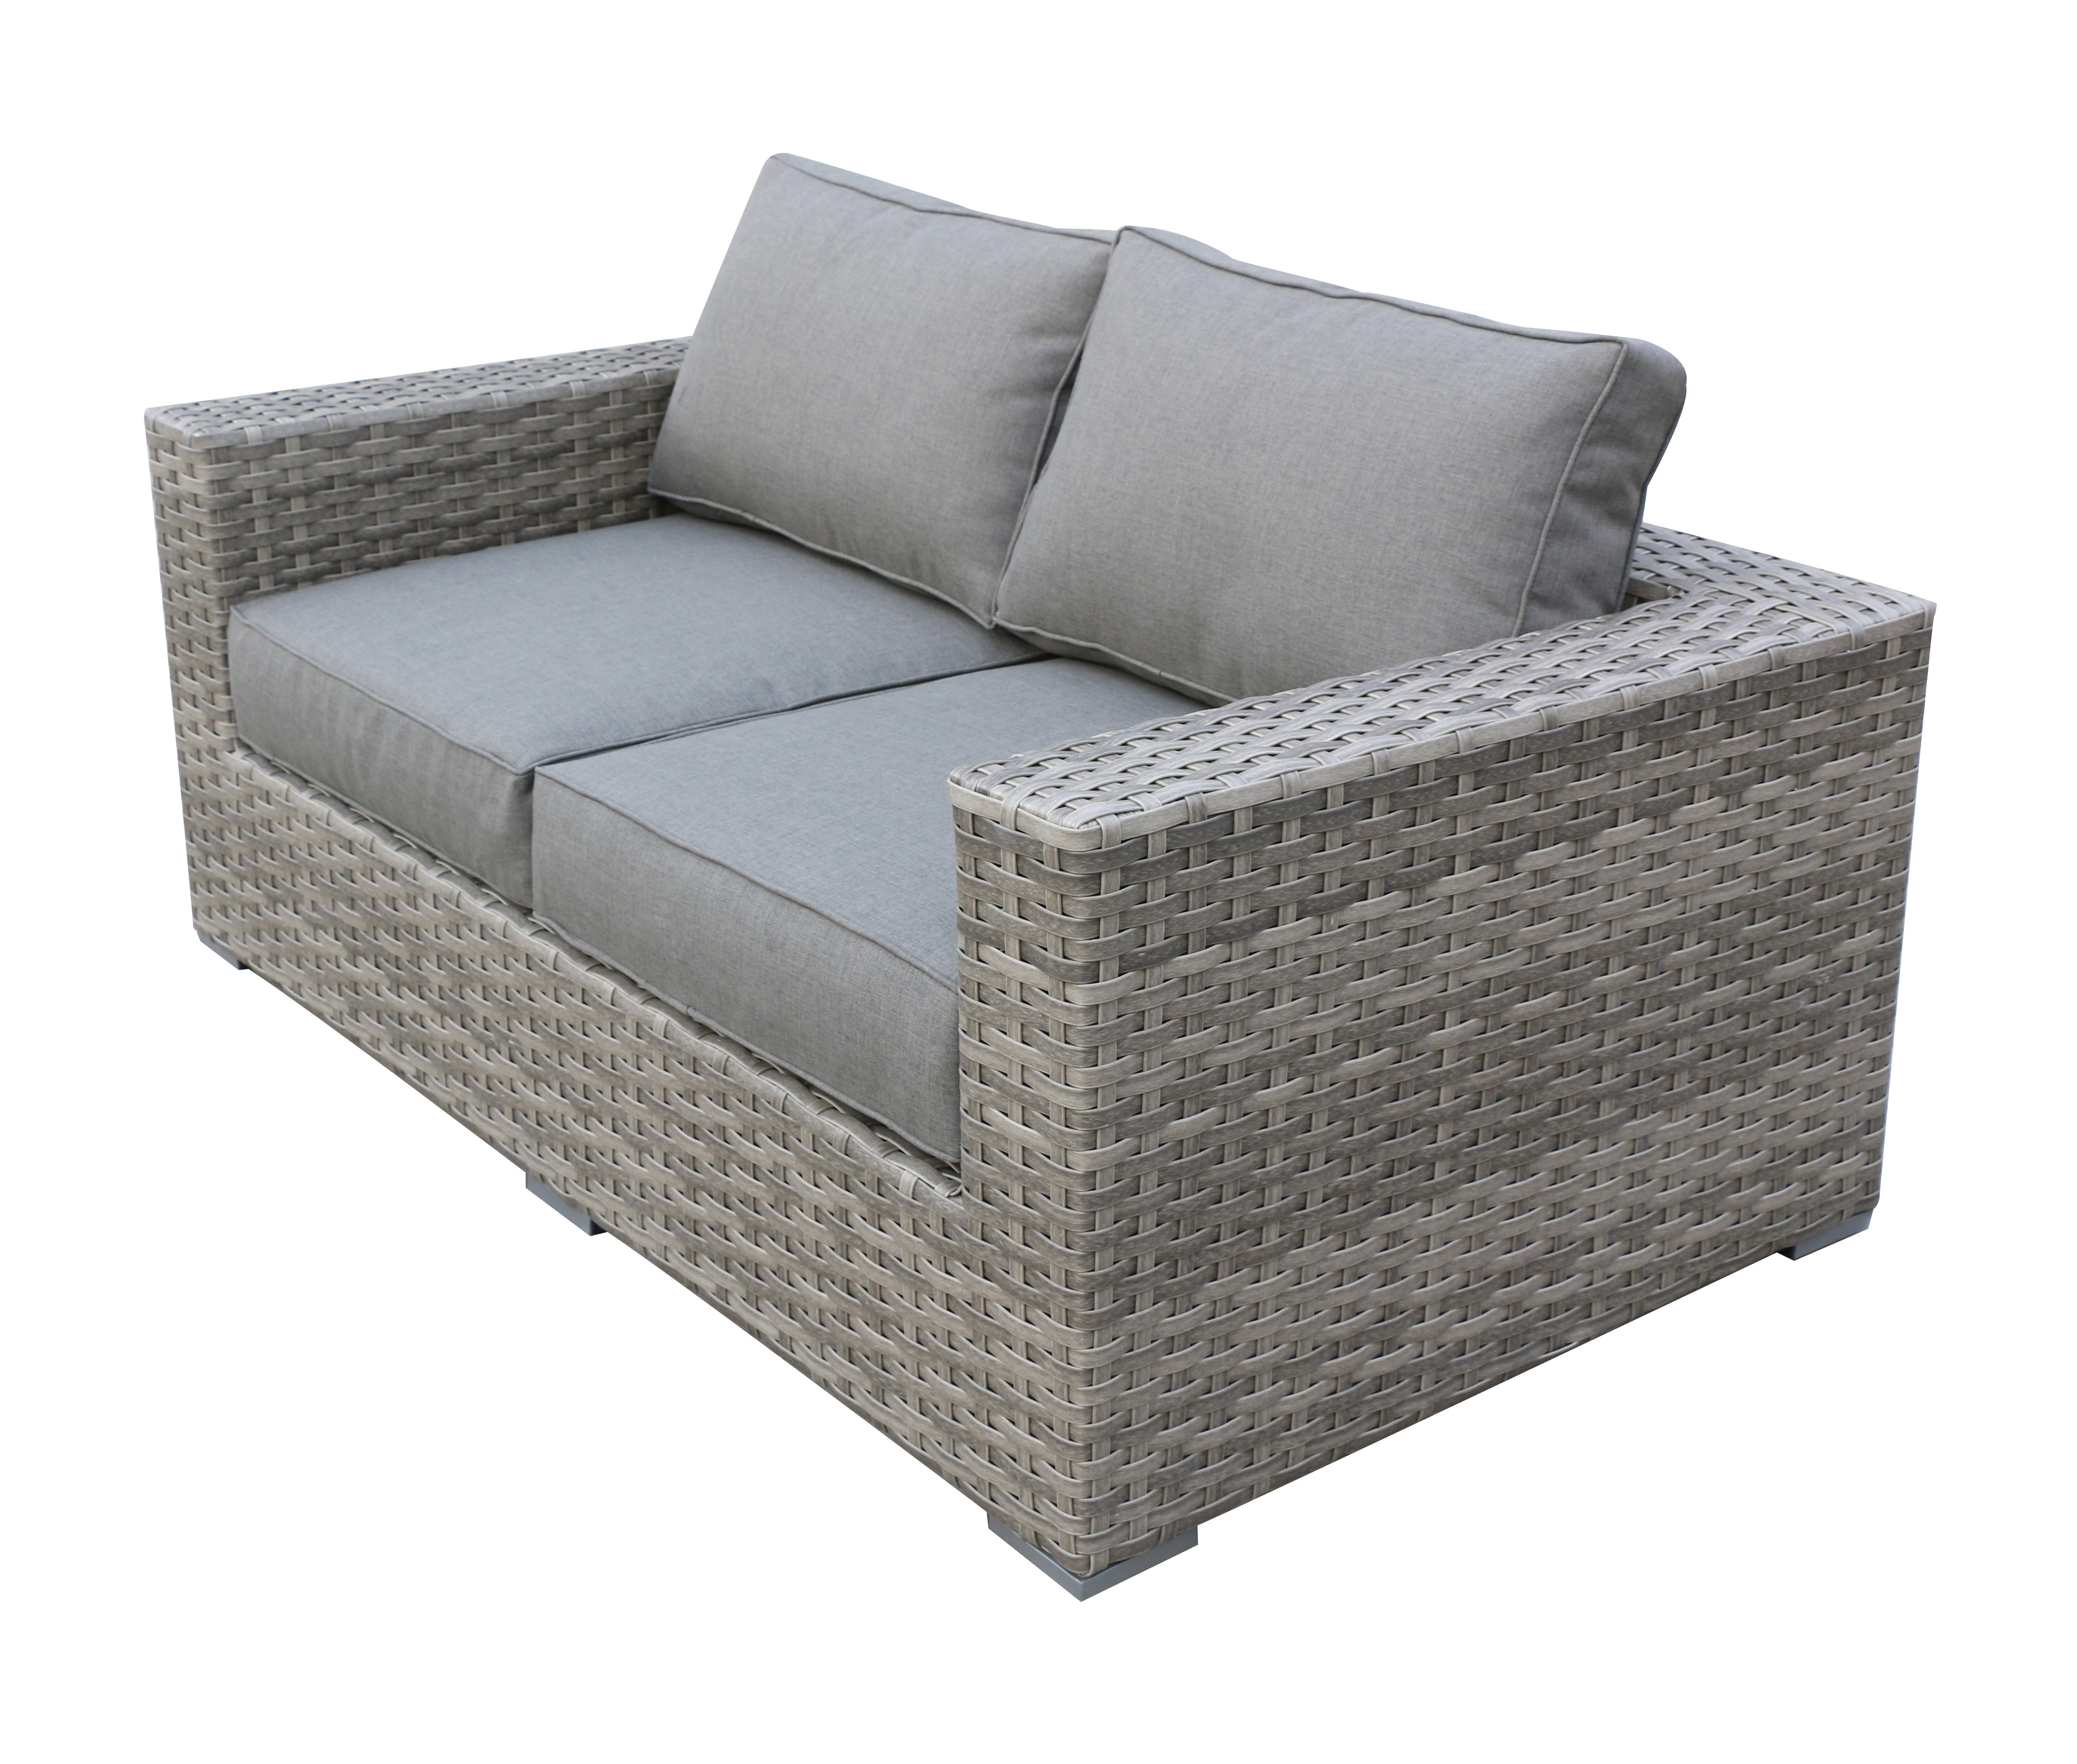 Karan Wicker Patio Loveseats With Regard To Well Known Kaiser Love Seat With Cushion (View 16 of 20)